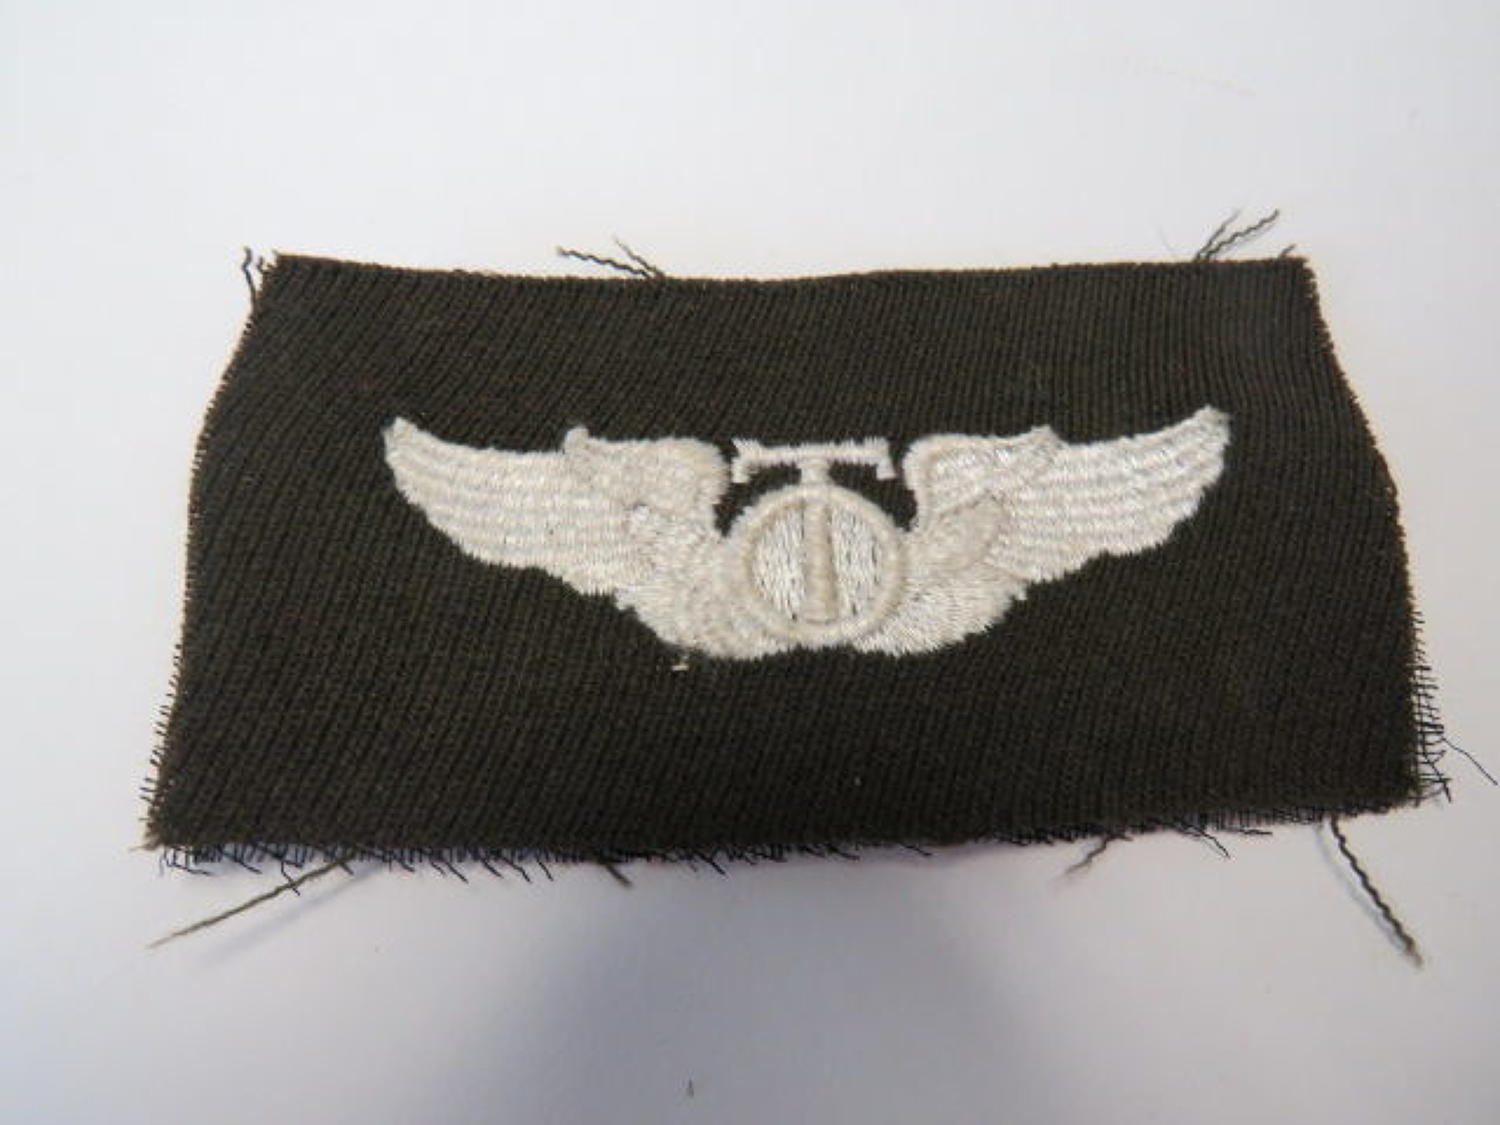 USAAF Technical Observer Wings